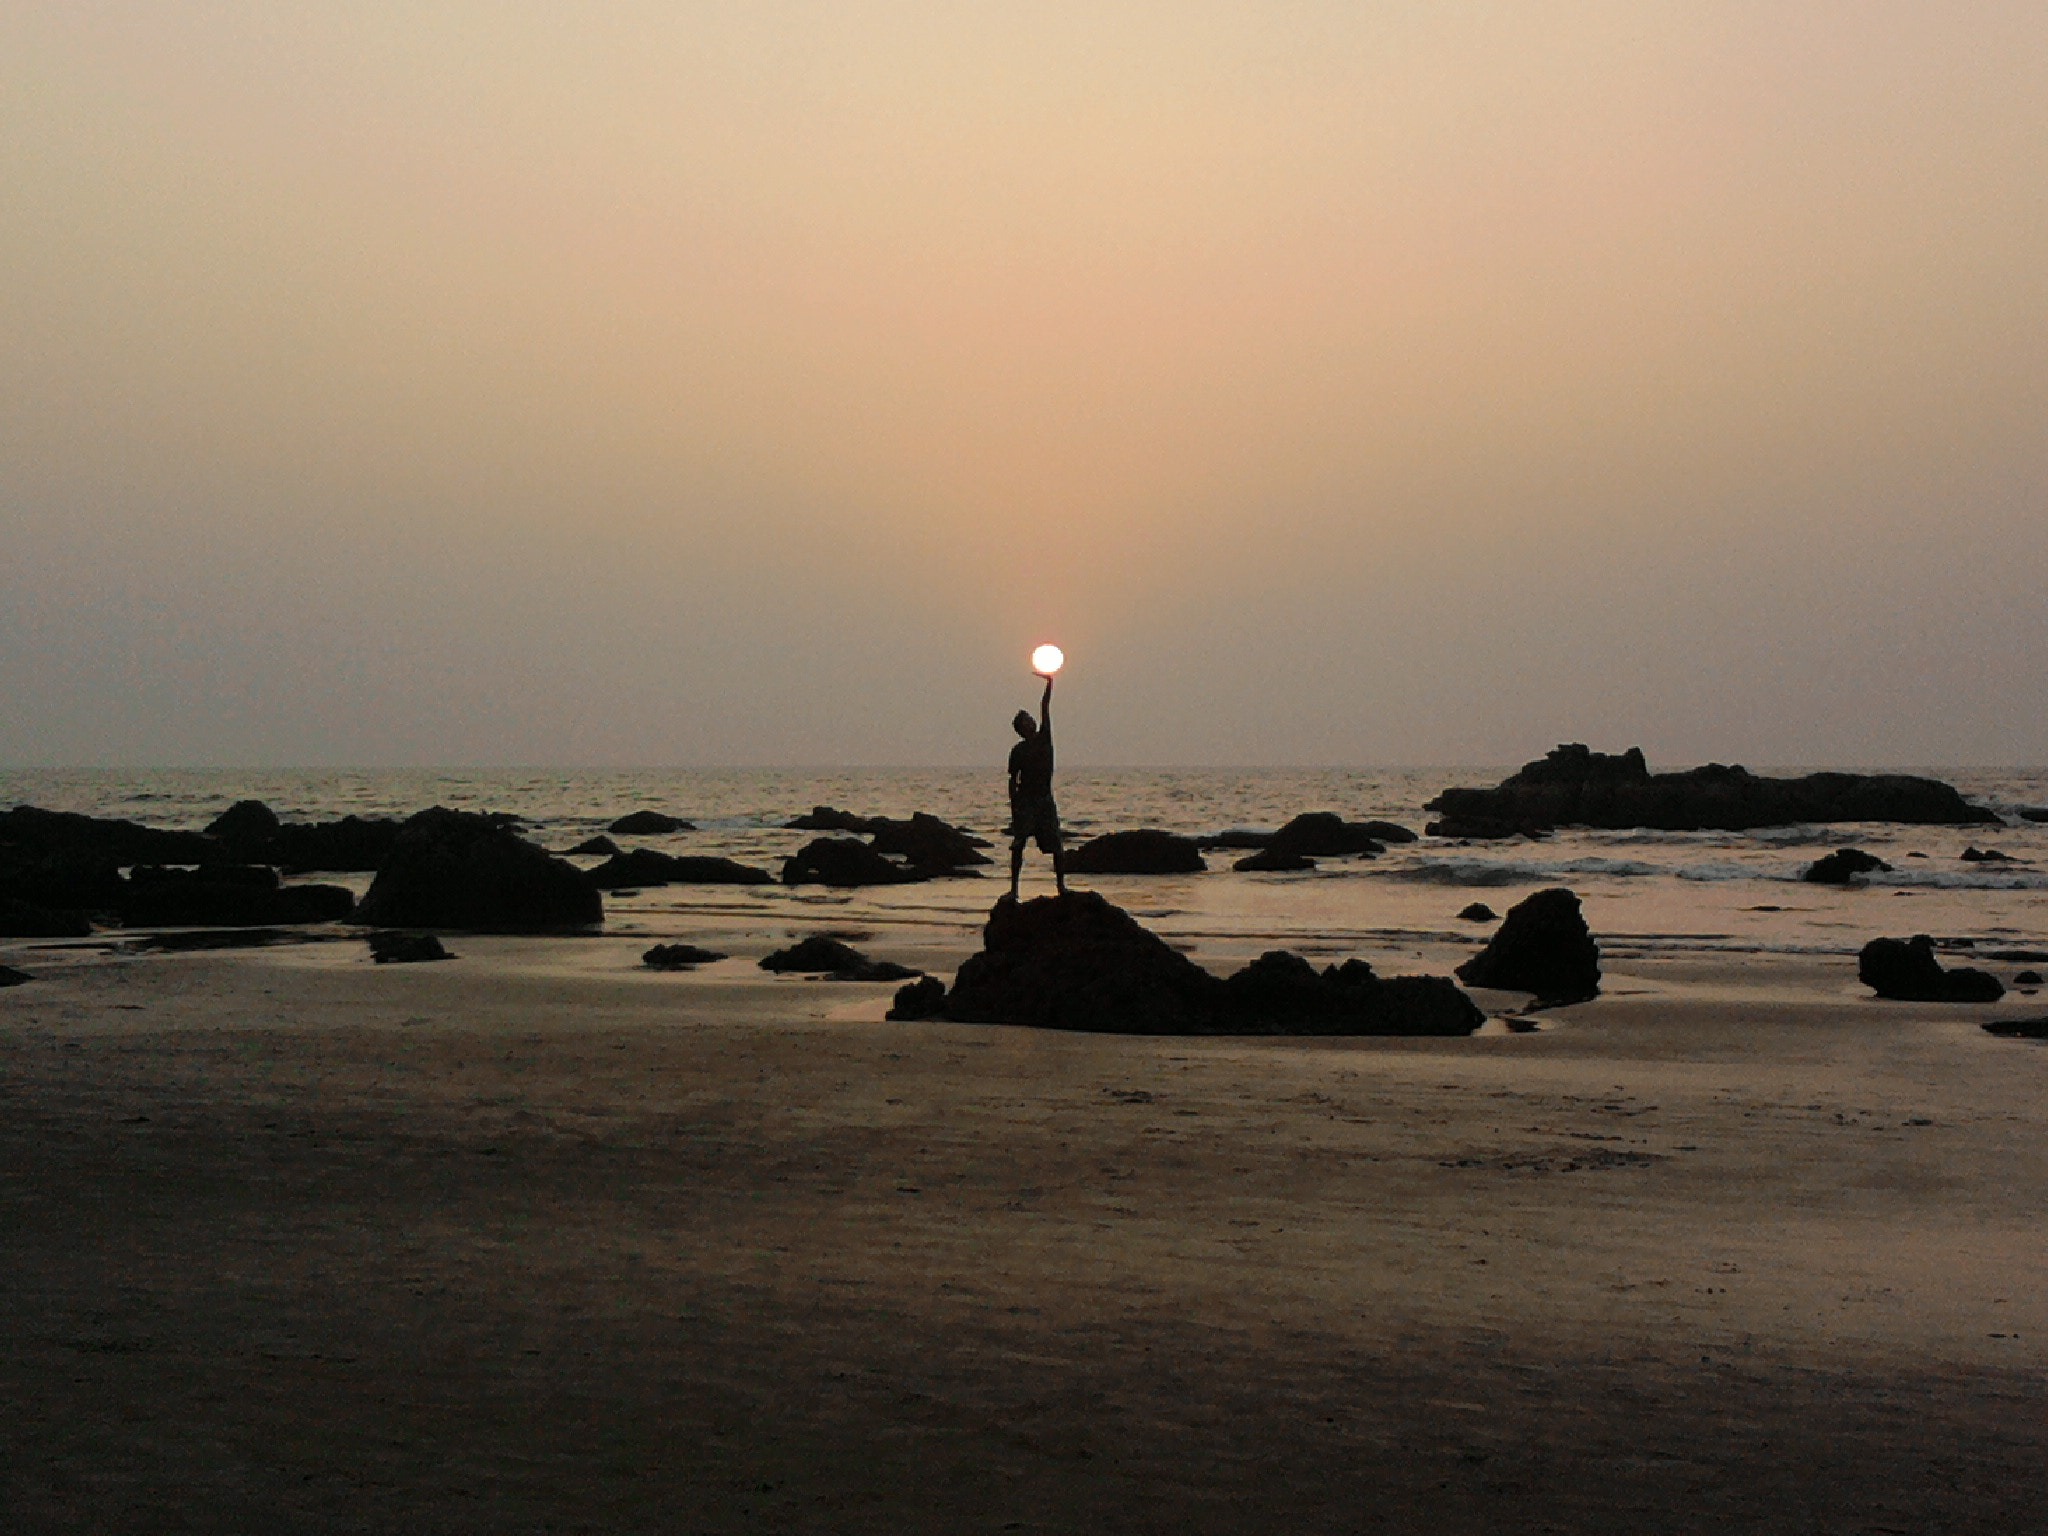 Photograph Carrying the light by Ayush Mishra on 500px